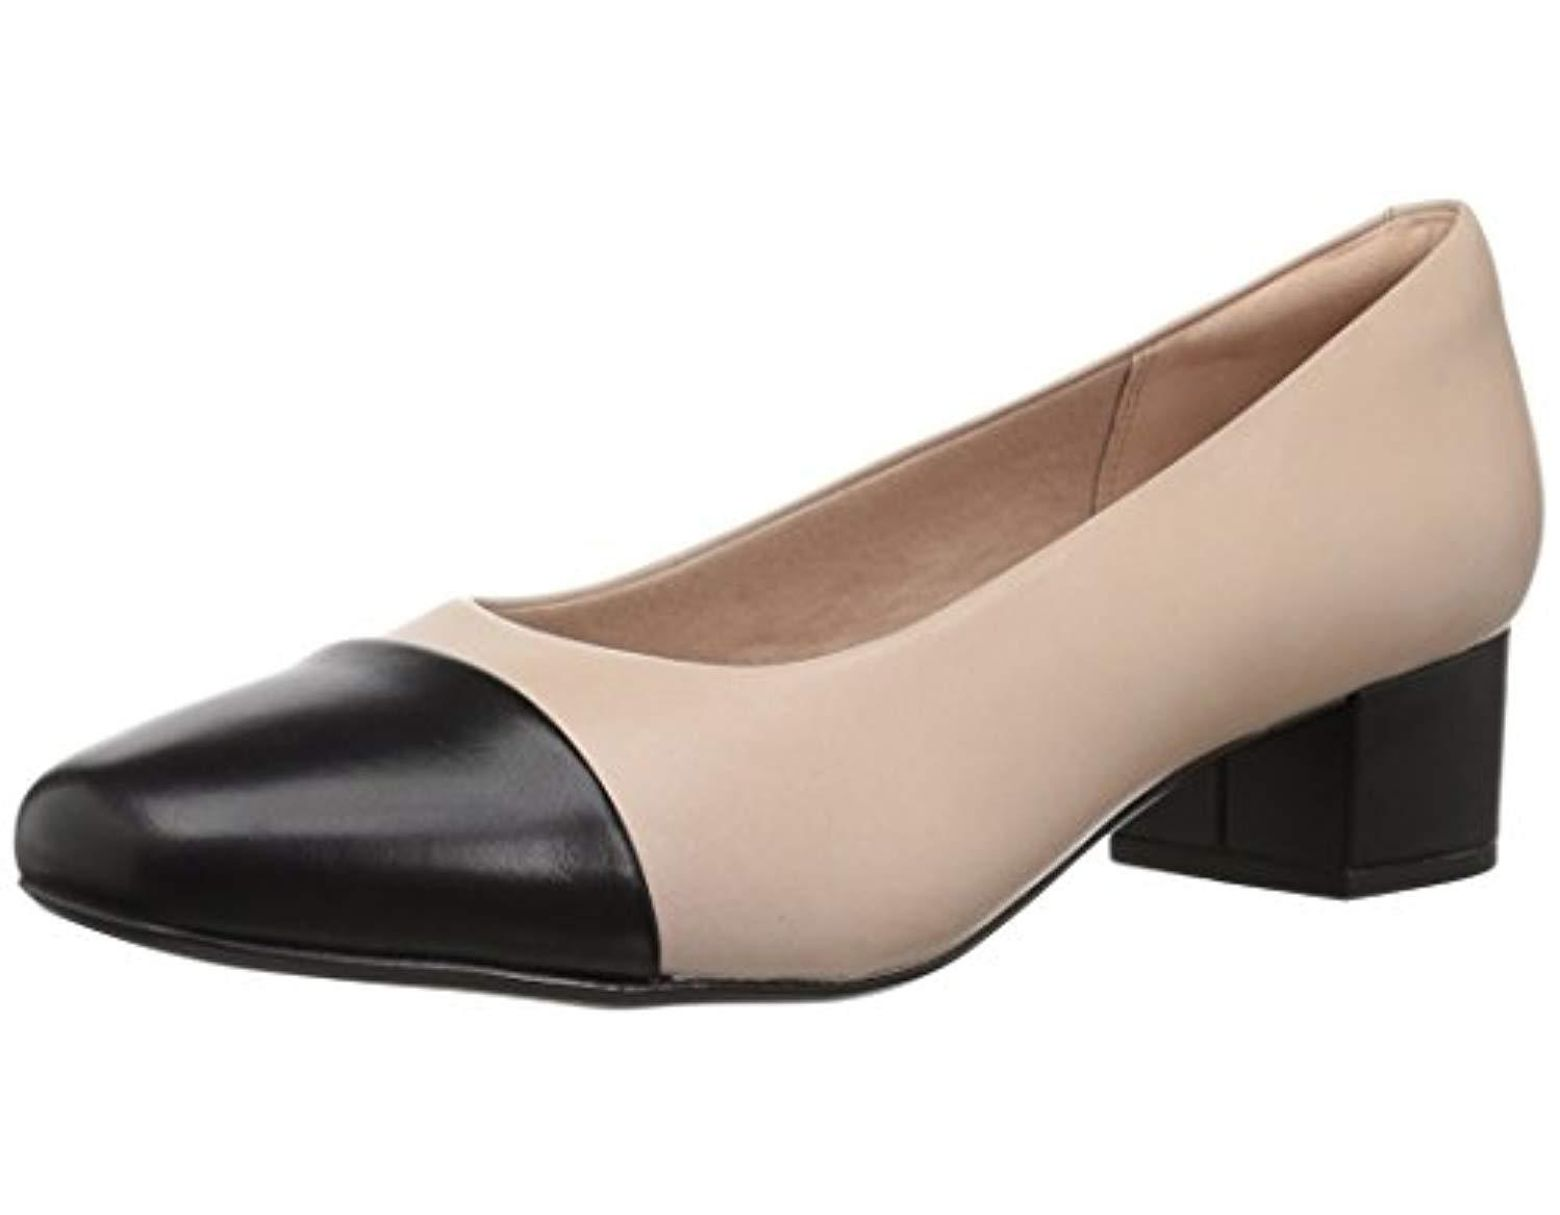 85bfde0a61 Clarks Chartli Diva Pump in Natural - Lyst